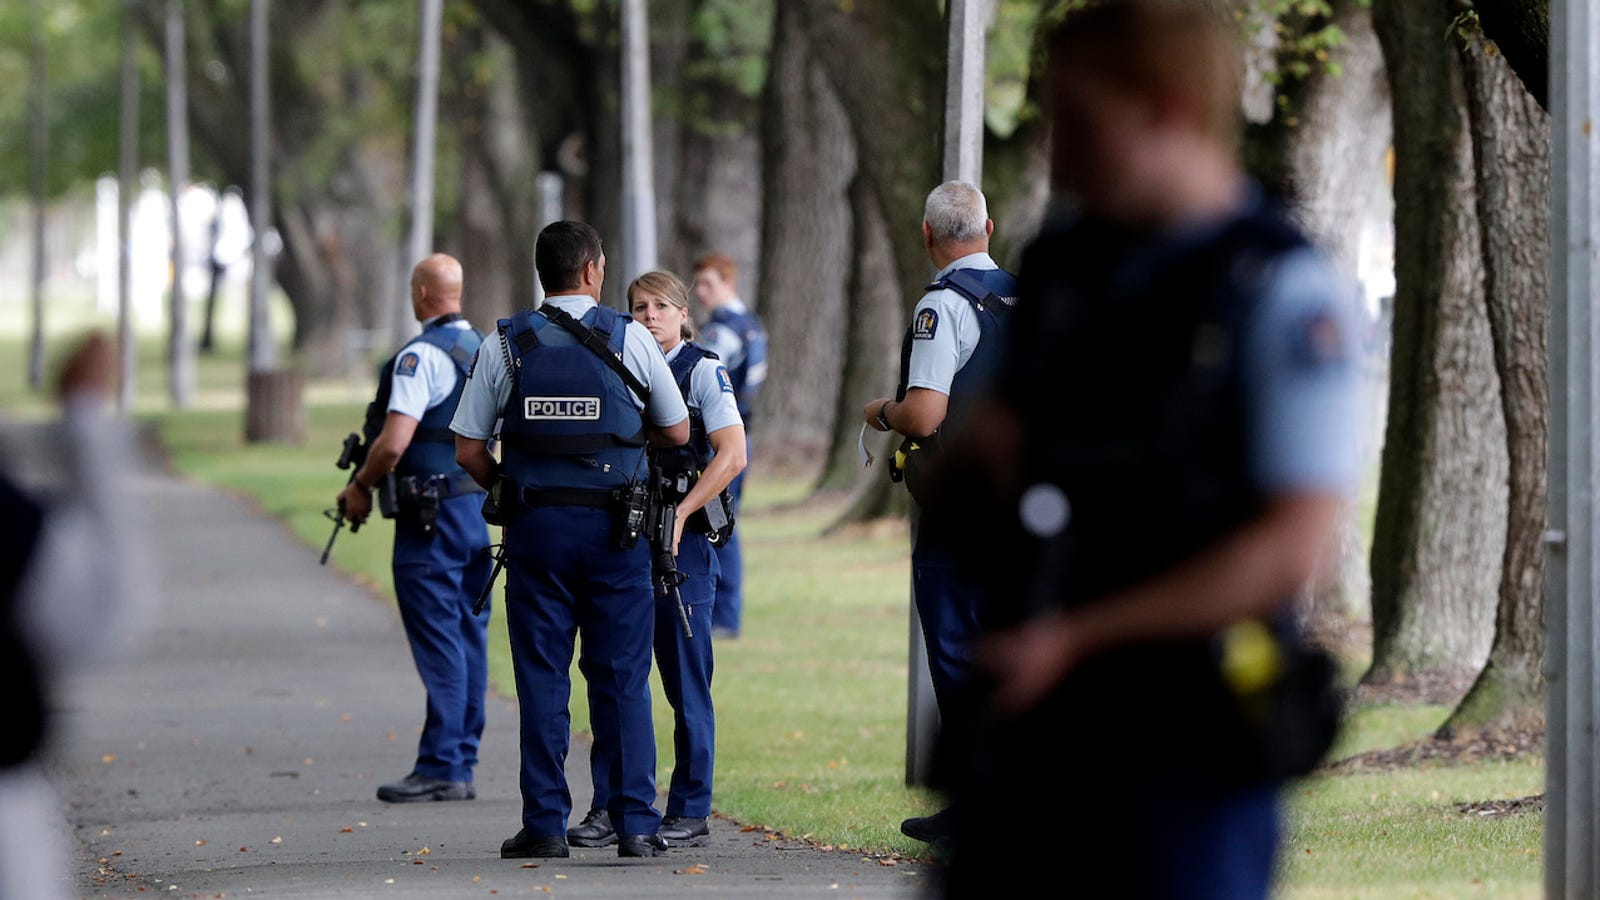 New Zealand Mosque Shooter Livestreamed Killings On Facebook: 50 Dead And Dozens Wounded In New Zealand Terror Attacks